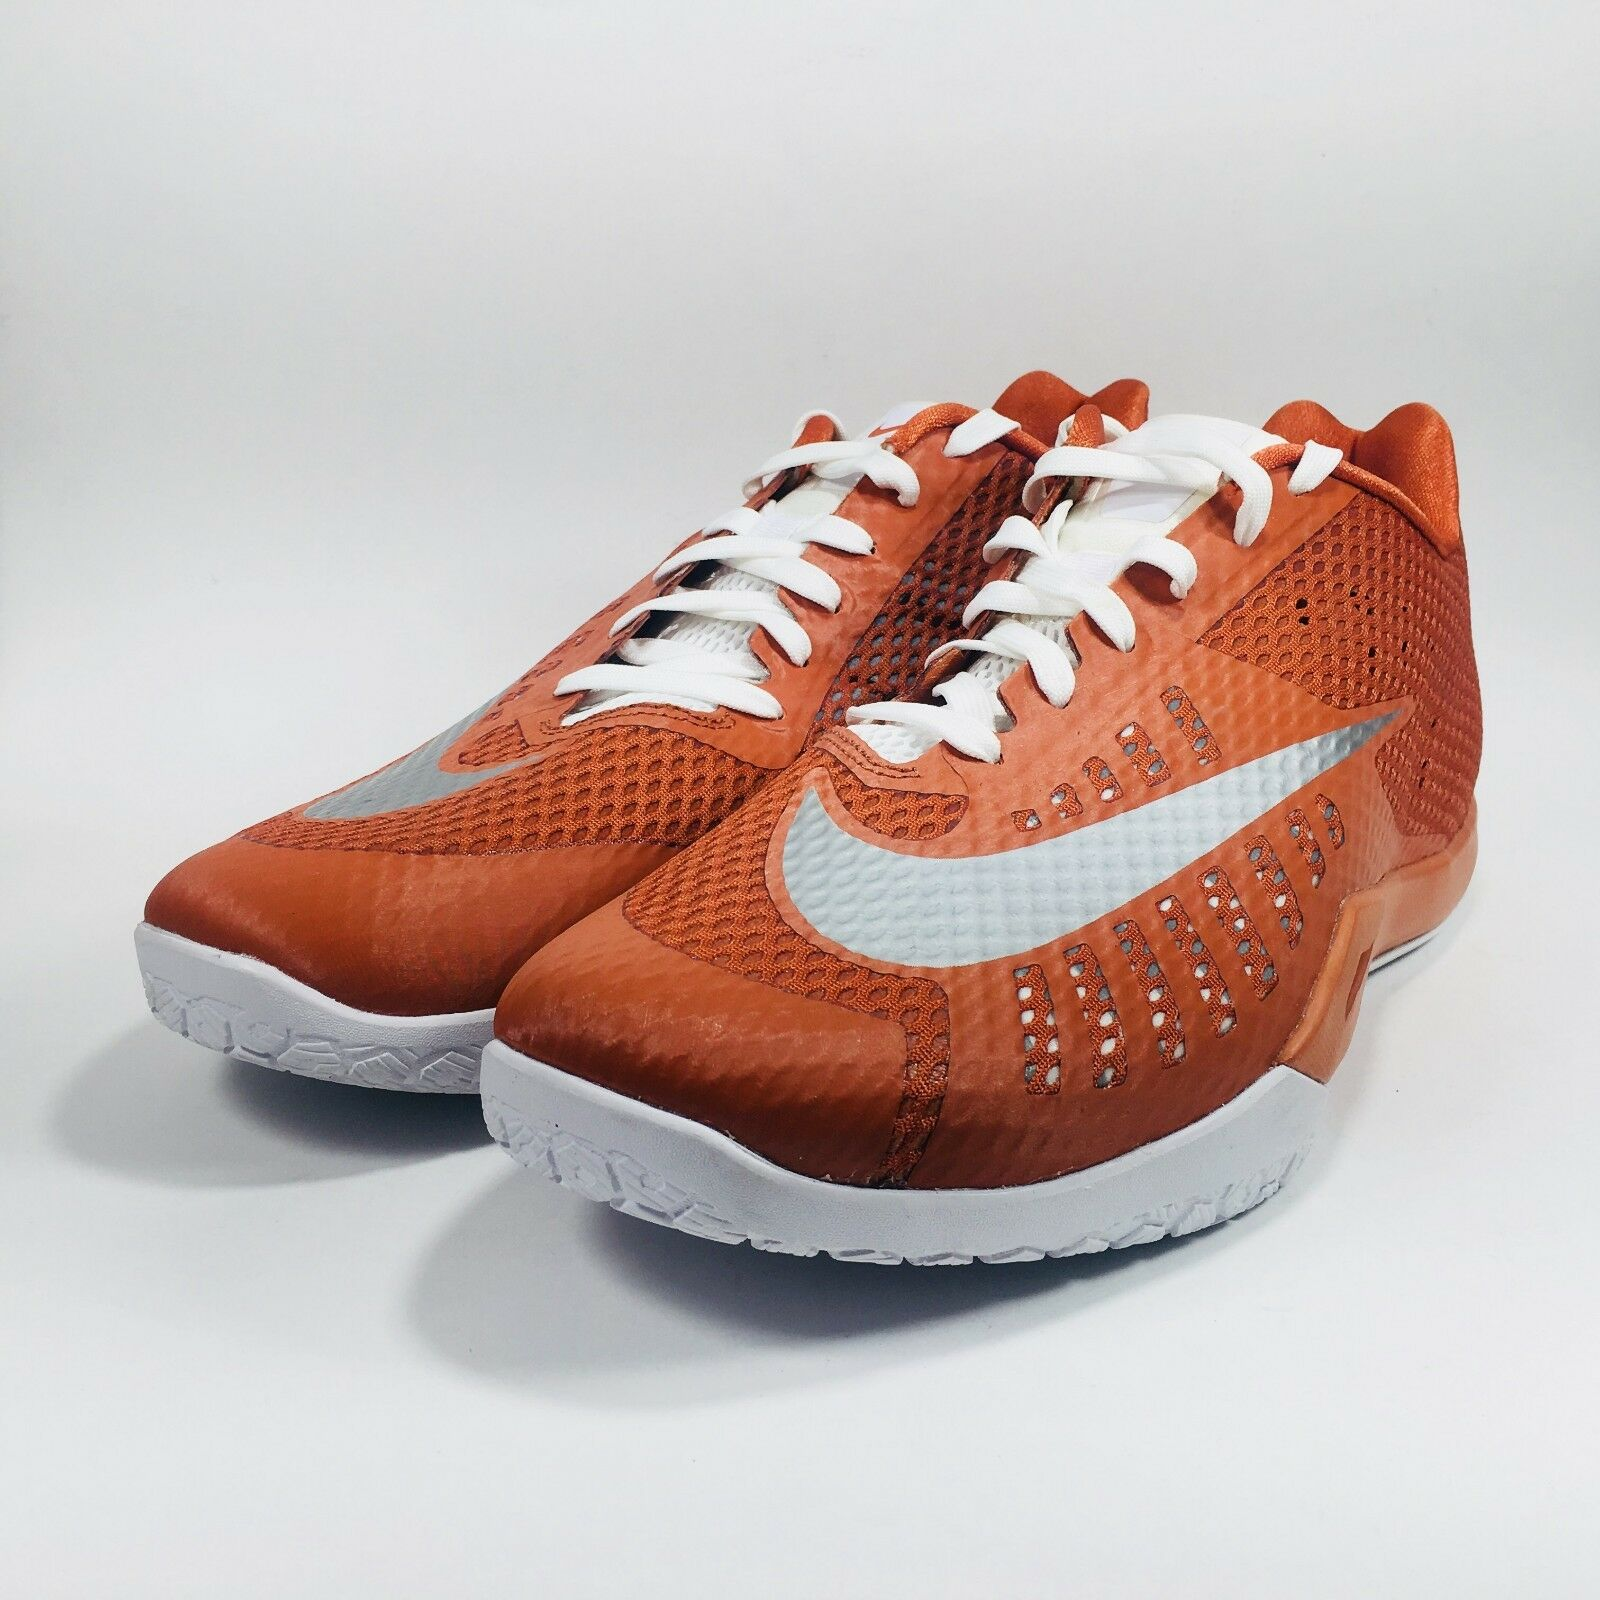 Nike Hyperlive TB Mens Basketball shoes Sneakers 834488 802 Low orange Size 14.5